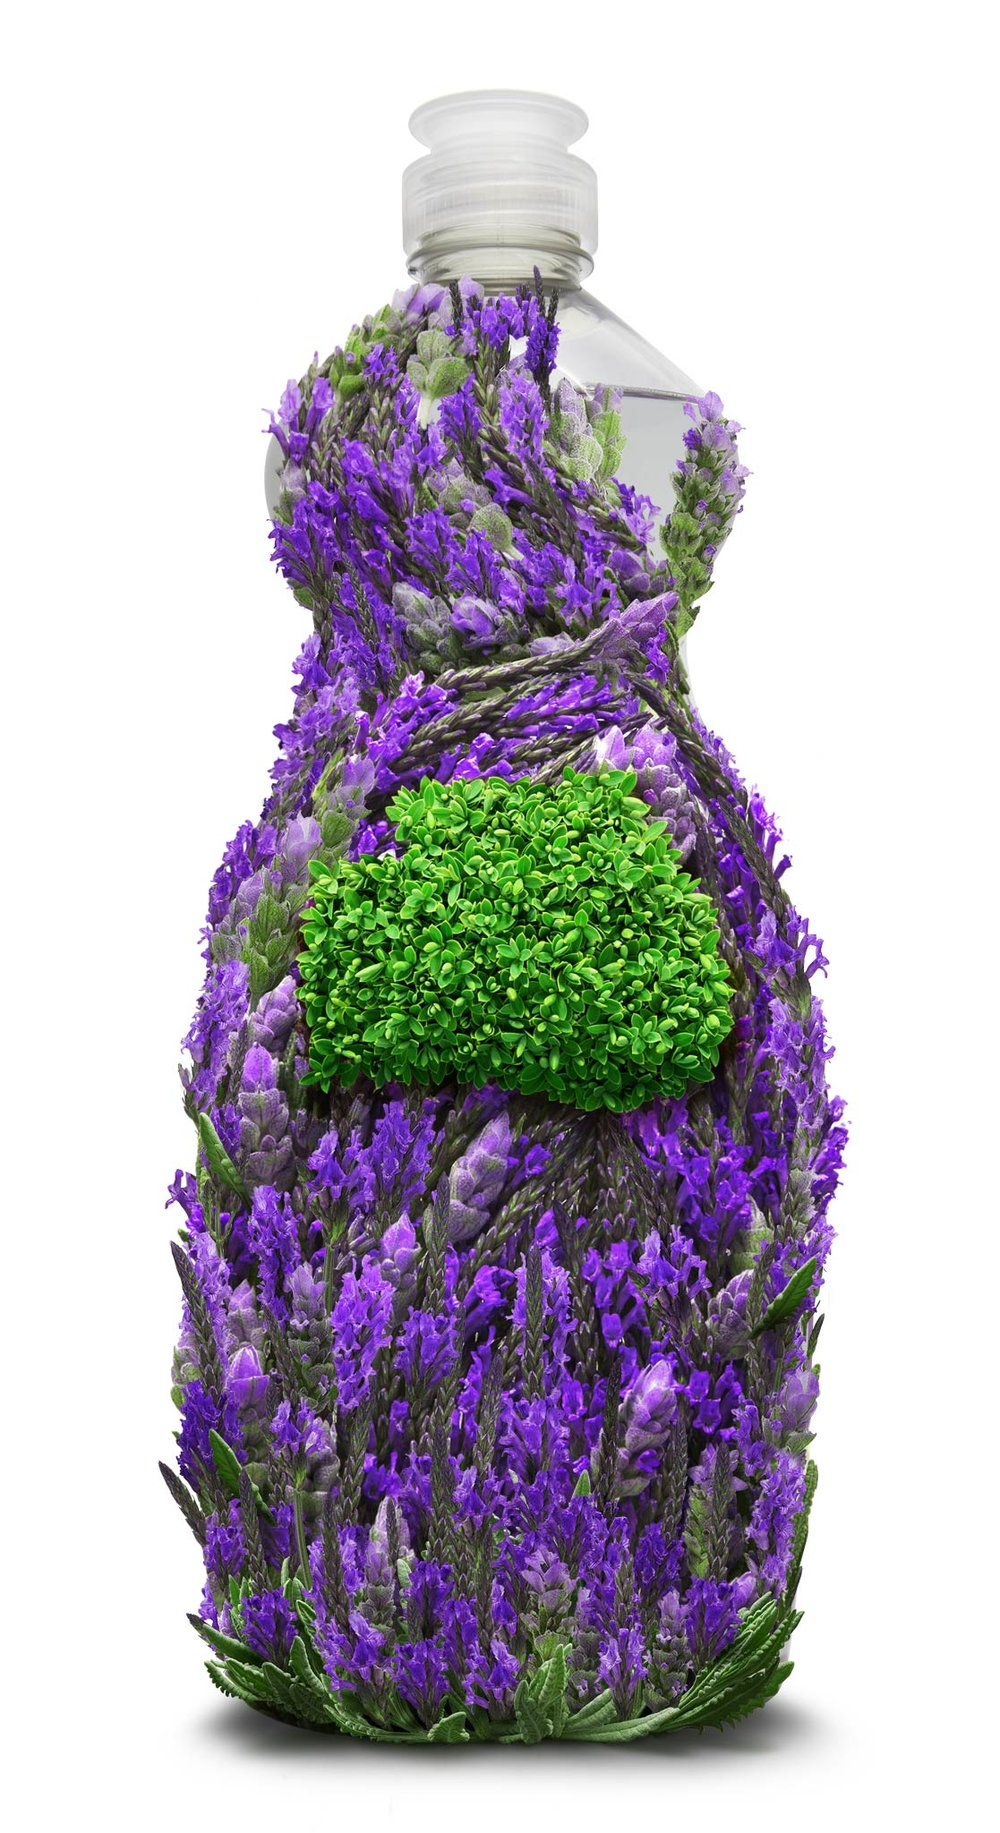 Lavender_DishWashing_09.jpg